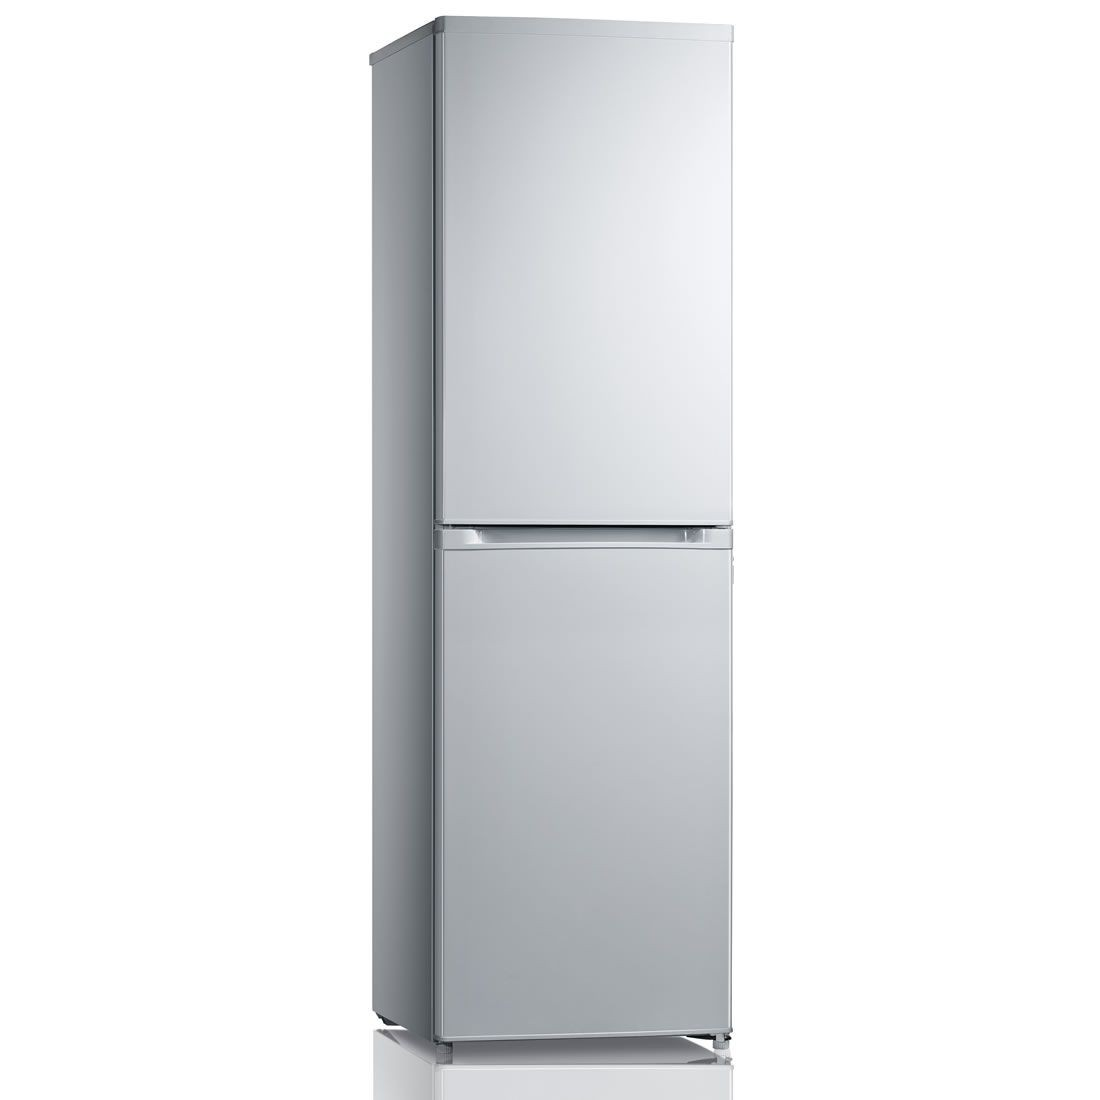 Montpellier MFF196W Fridge Freezer